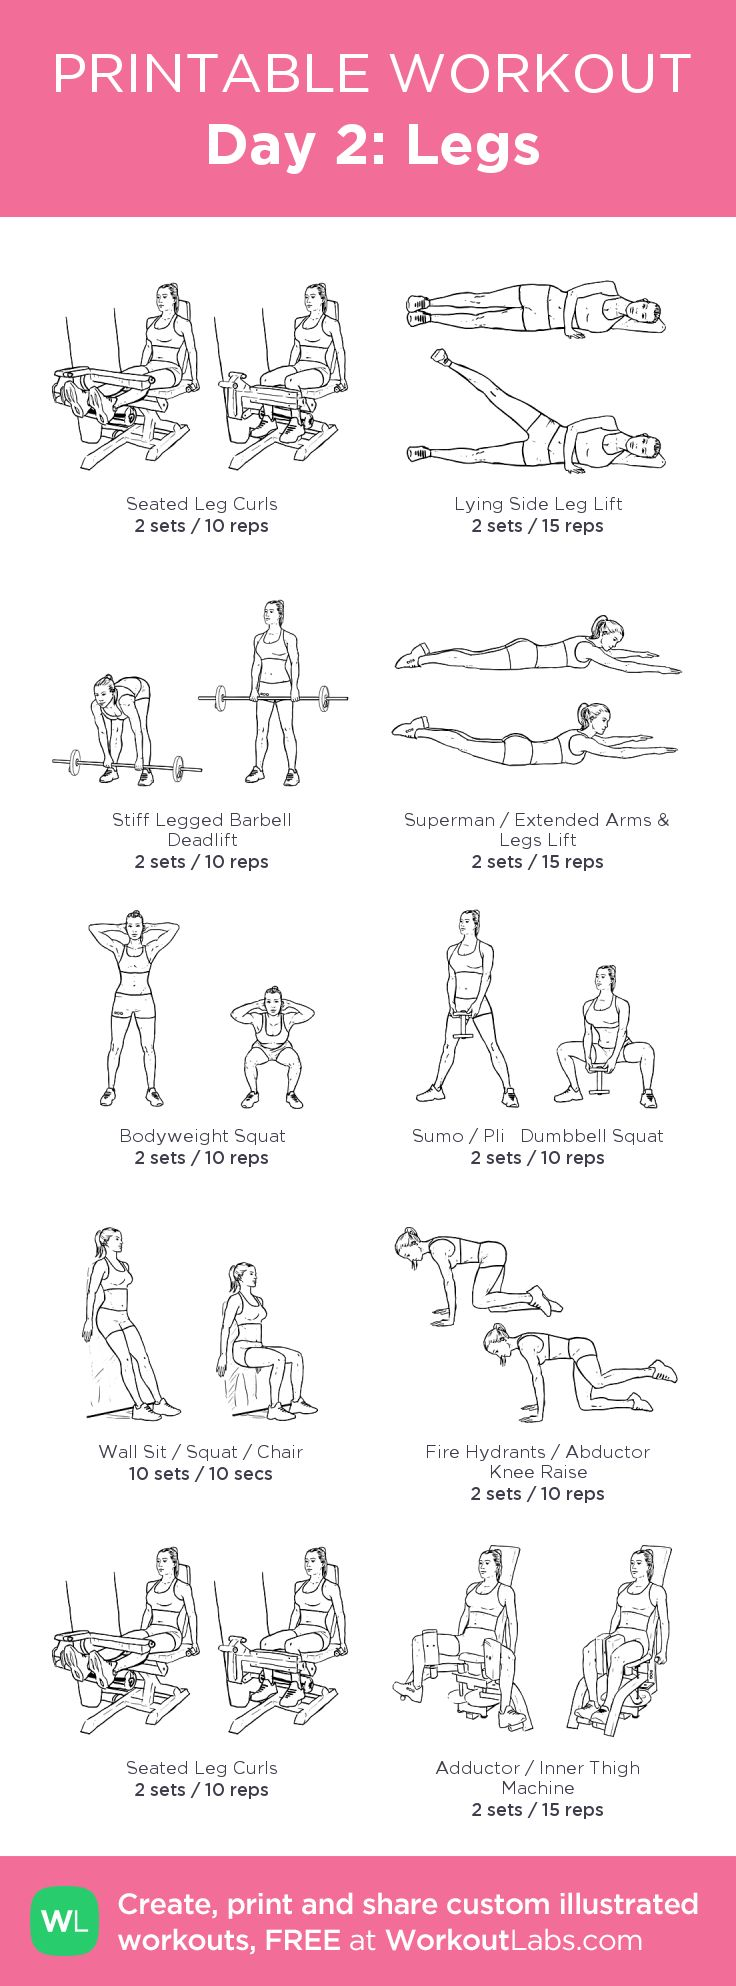 Day 2: Legs:my visual workout created at WorkoutLabs.com • Click through to customize and download as a FREE PDF! #customworkout